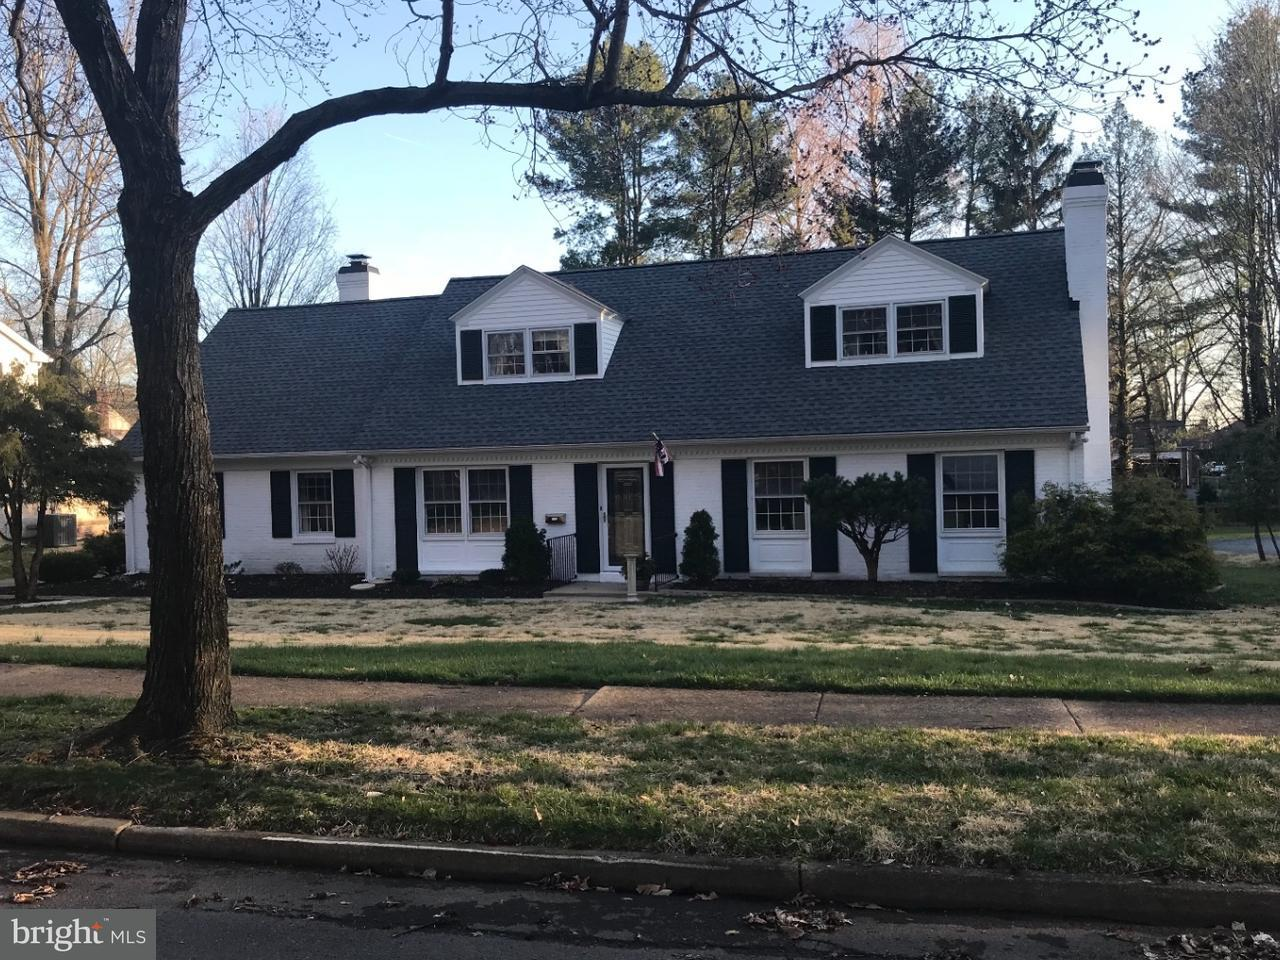 Single Family Home for Sale at 538 KERFOOT FARM Road Talleyville, Delaware 19803 United States